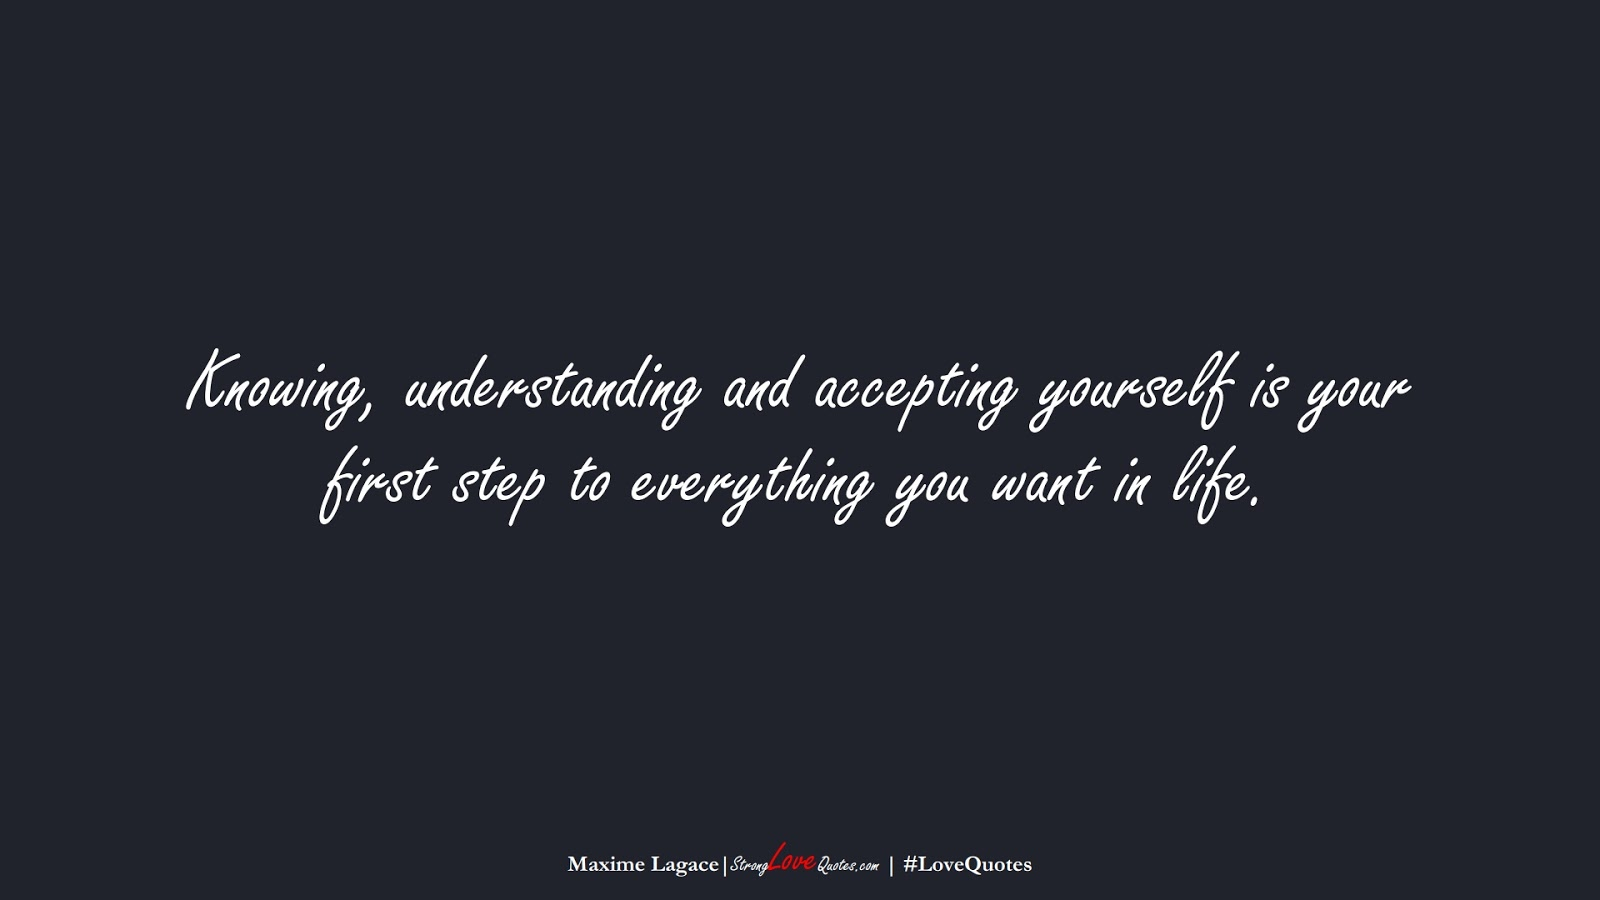 Knowing, understanding and accepting yourself is your first step to everything you want in life. (Maxime Lagace);  #LoveQuotes